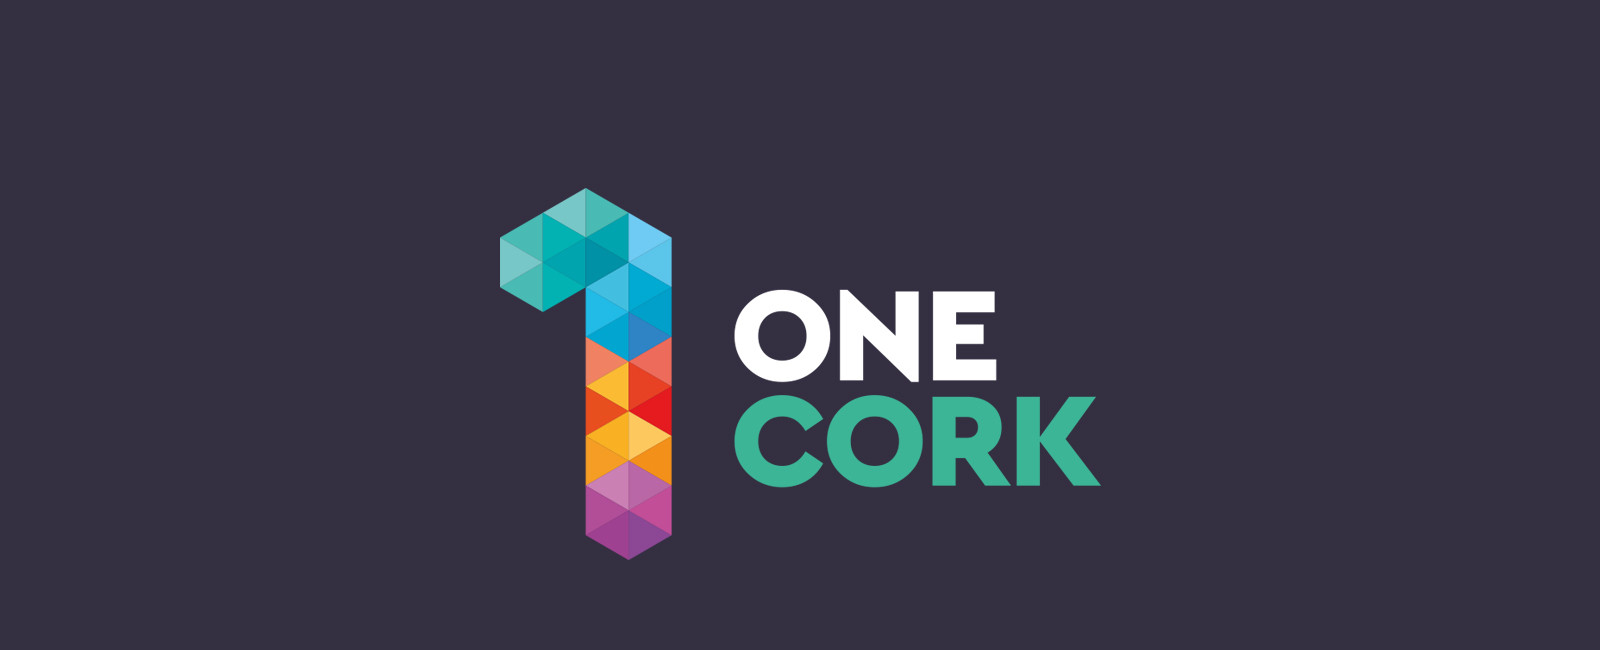 Irish Congress of Trade Unions: One Cork initiative